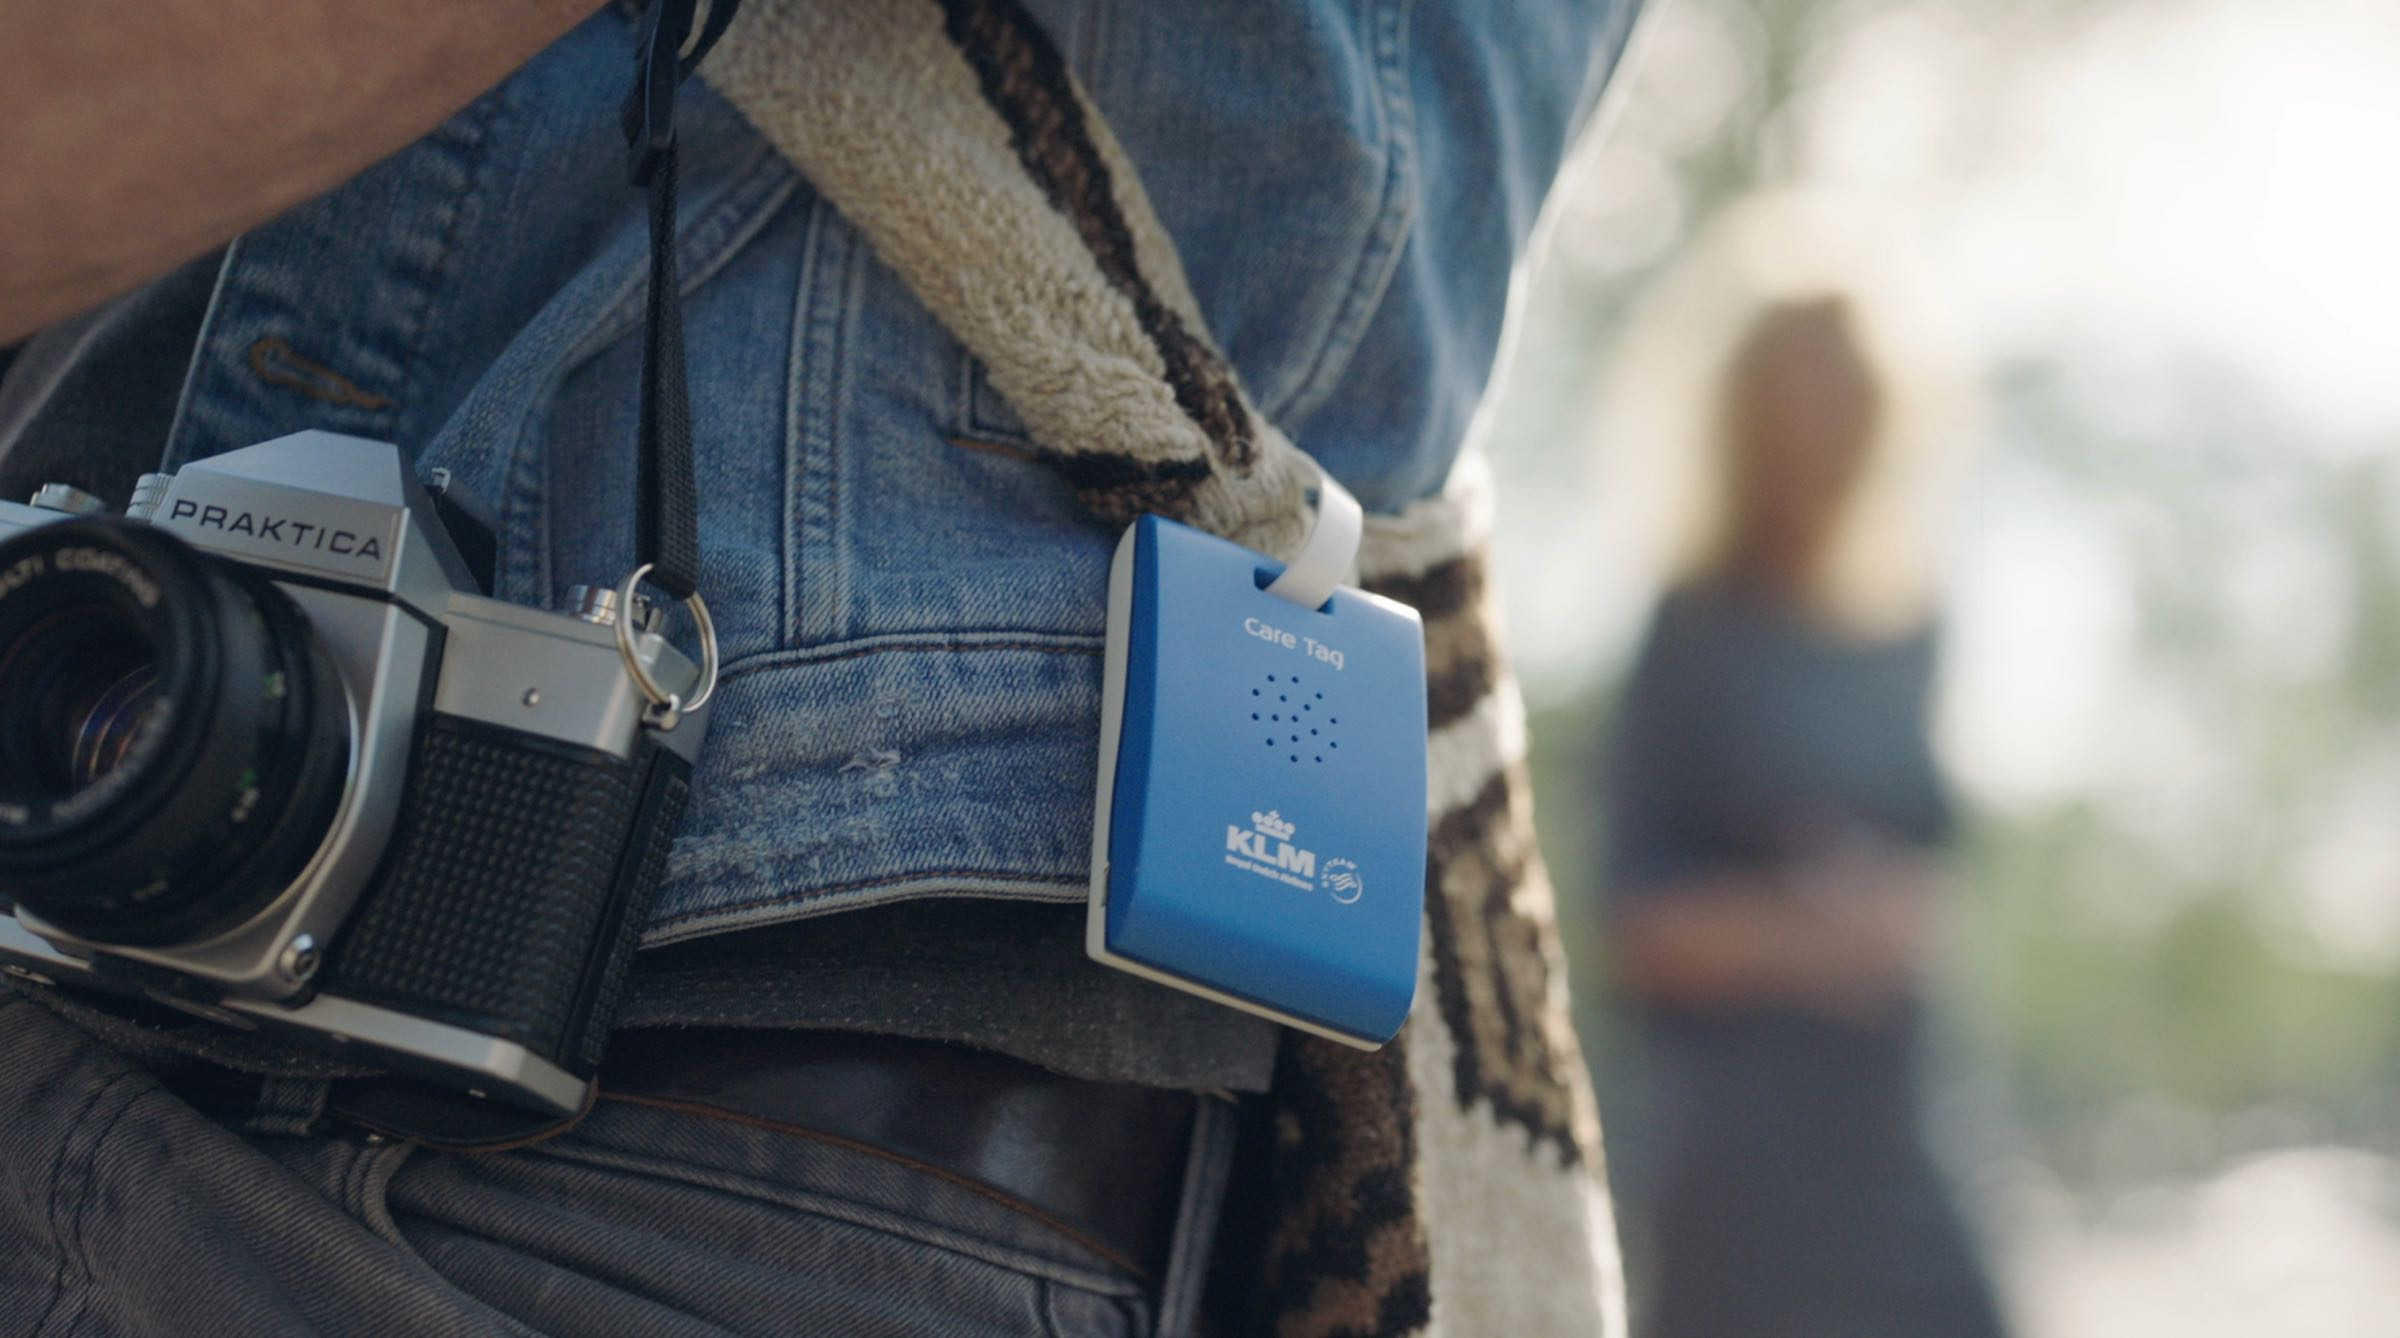 KLM Care TagA GPS tag that gives real-time audio tips to tourists visiting Amsterdam. - Client: KLMread more —>